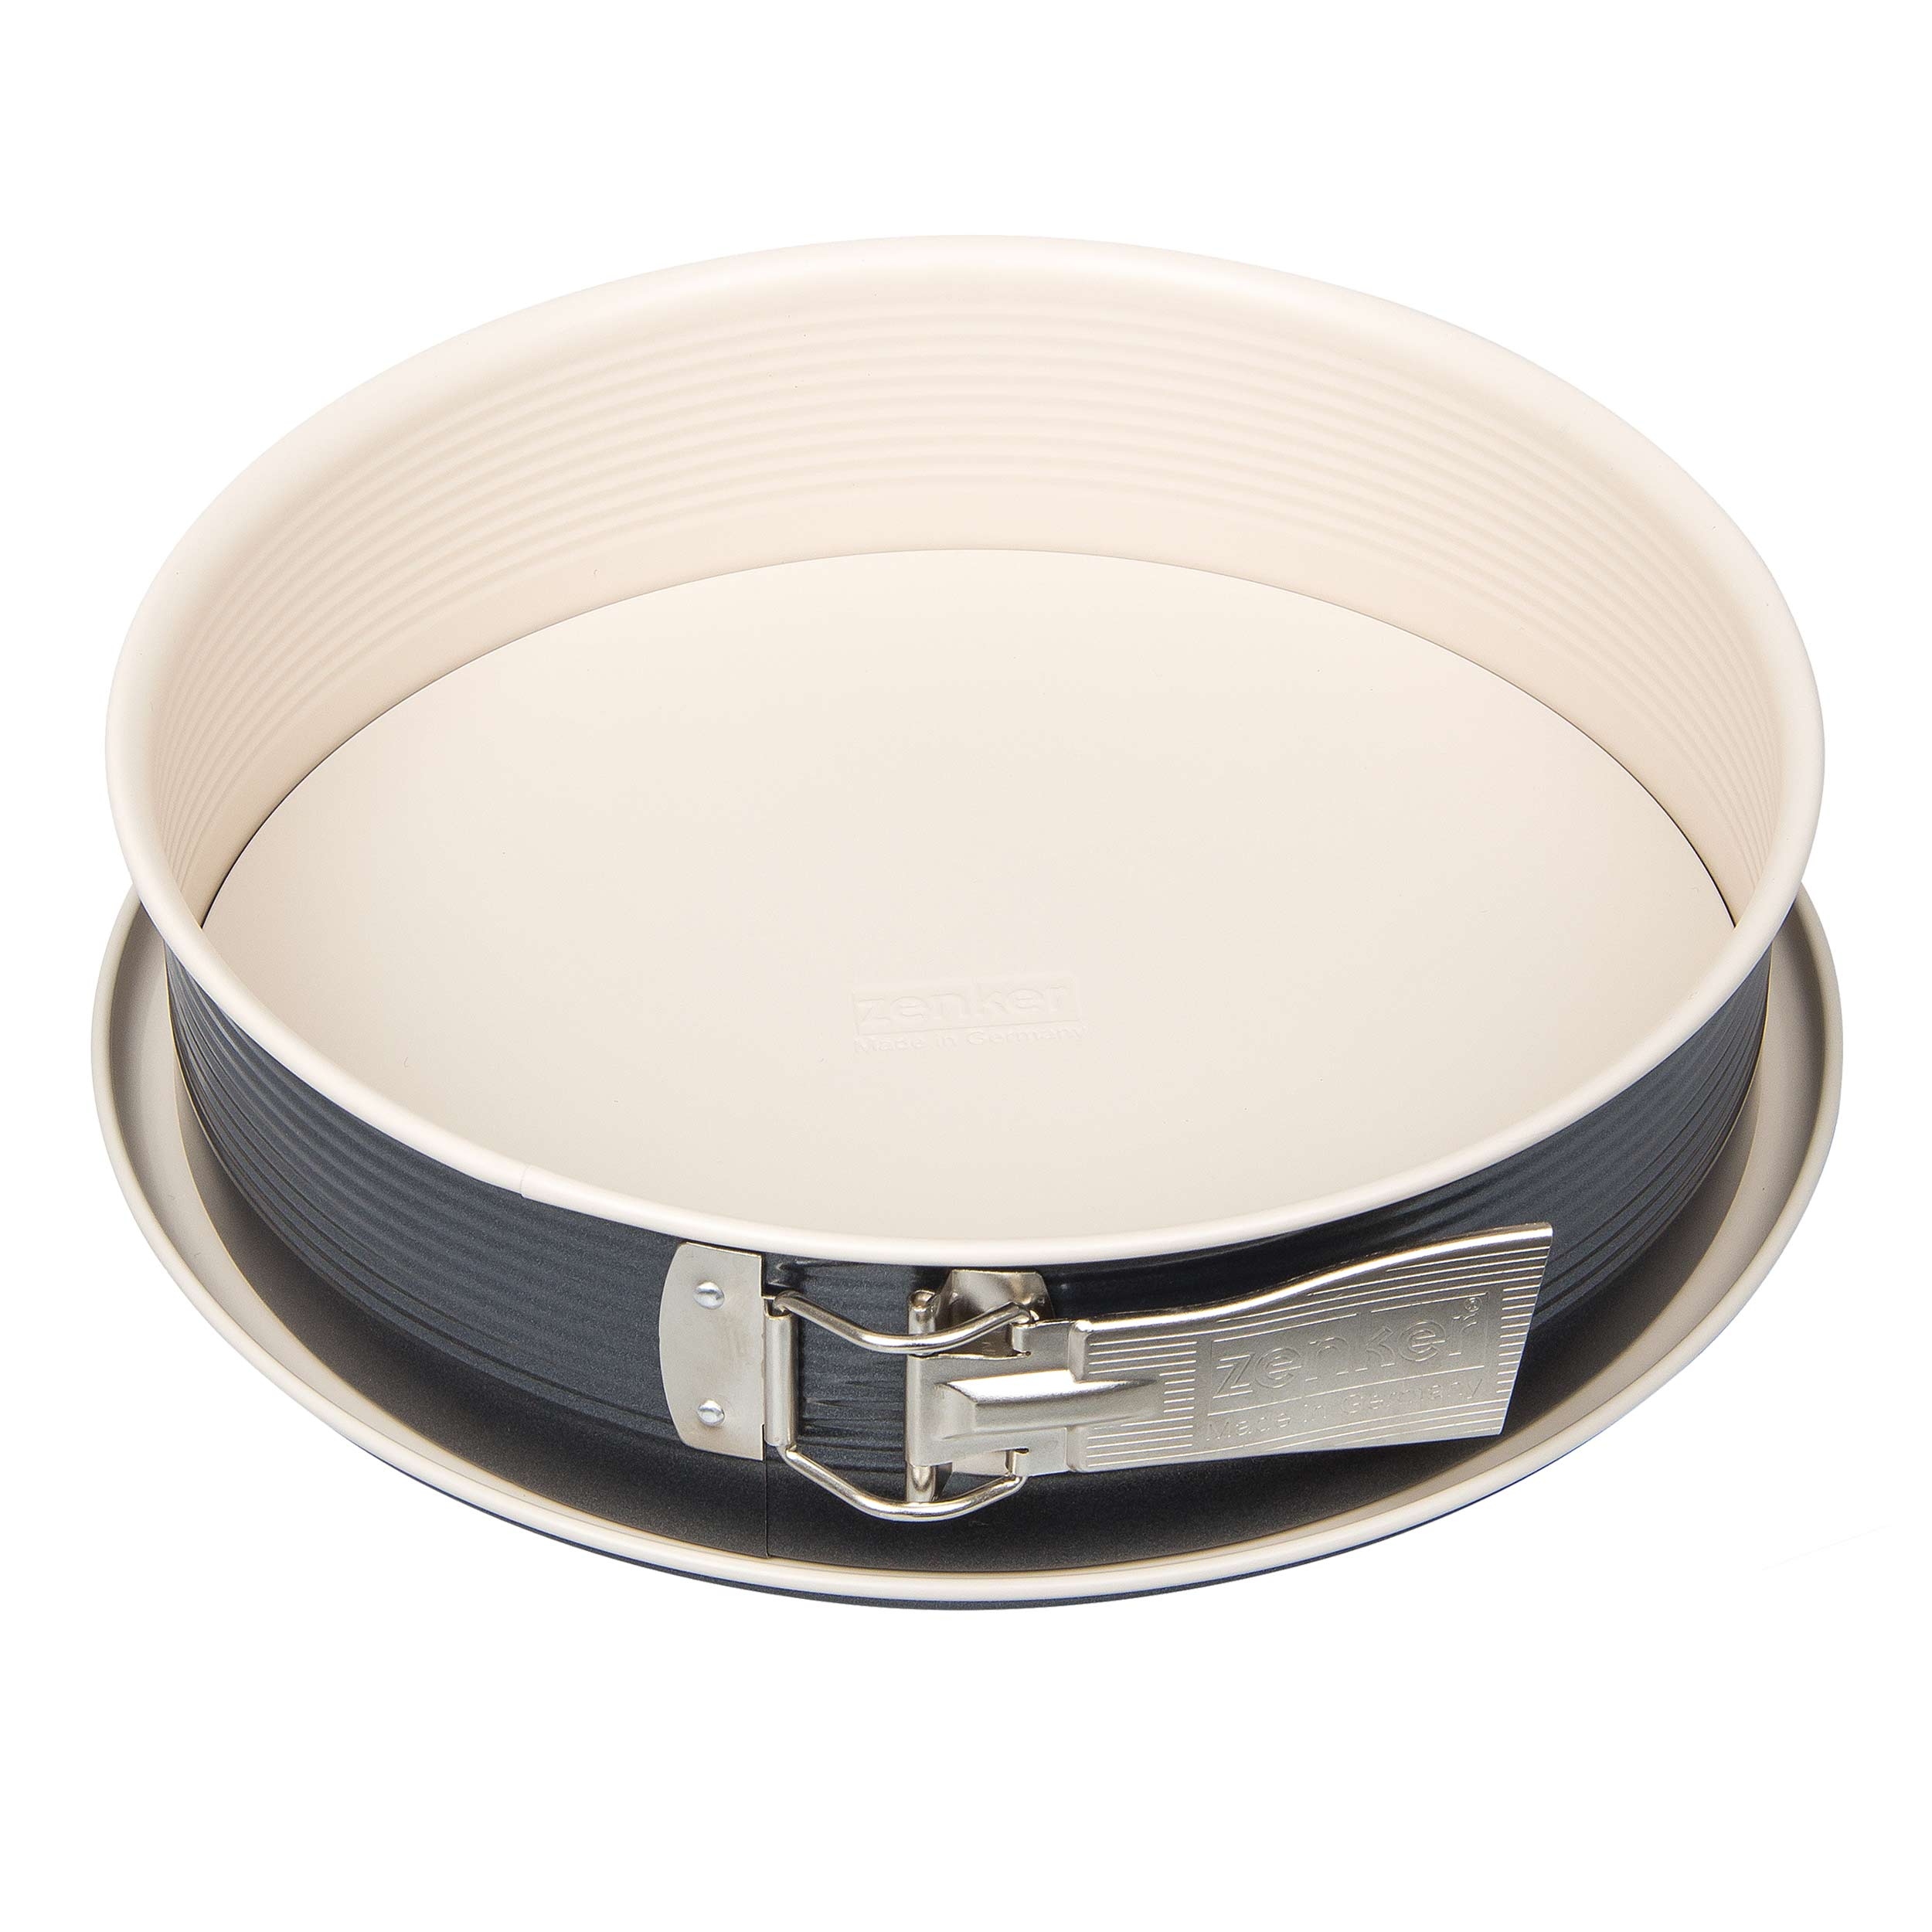 G Küchenform Zenker Creme Noir Springform Pan With 1 Bottom Baking Tin Cake Mould Ilag Ultimate 7812 At About Tea De Shop